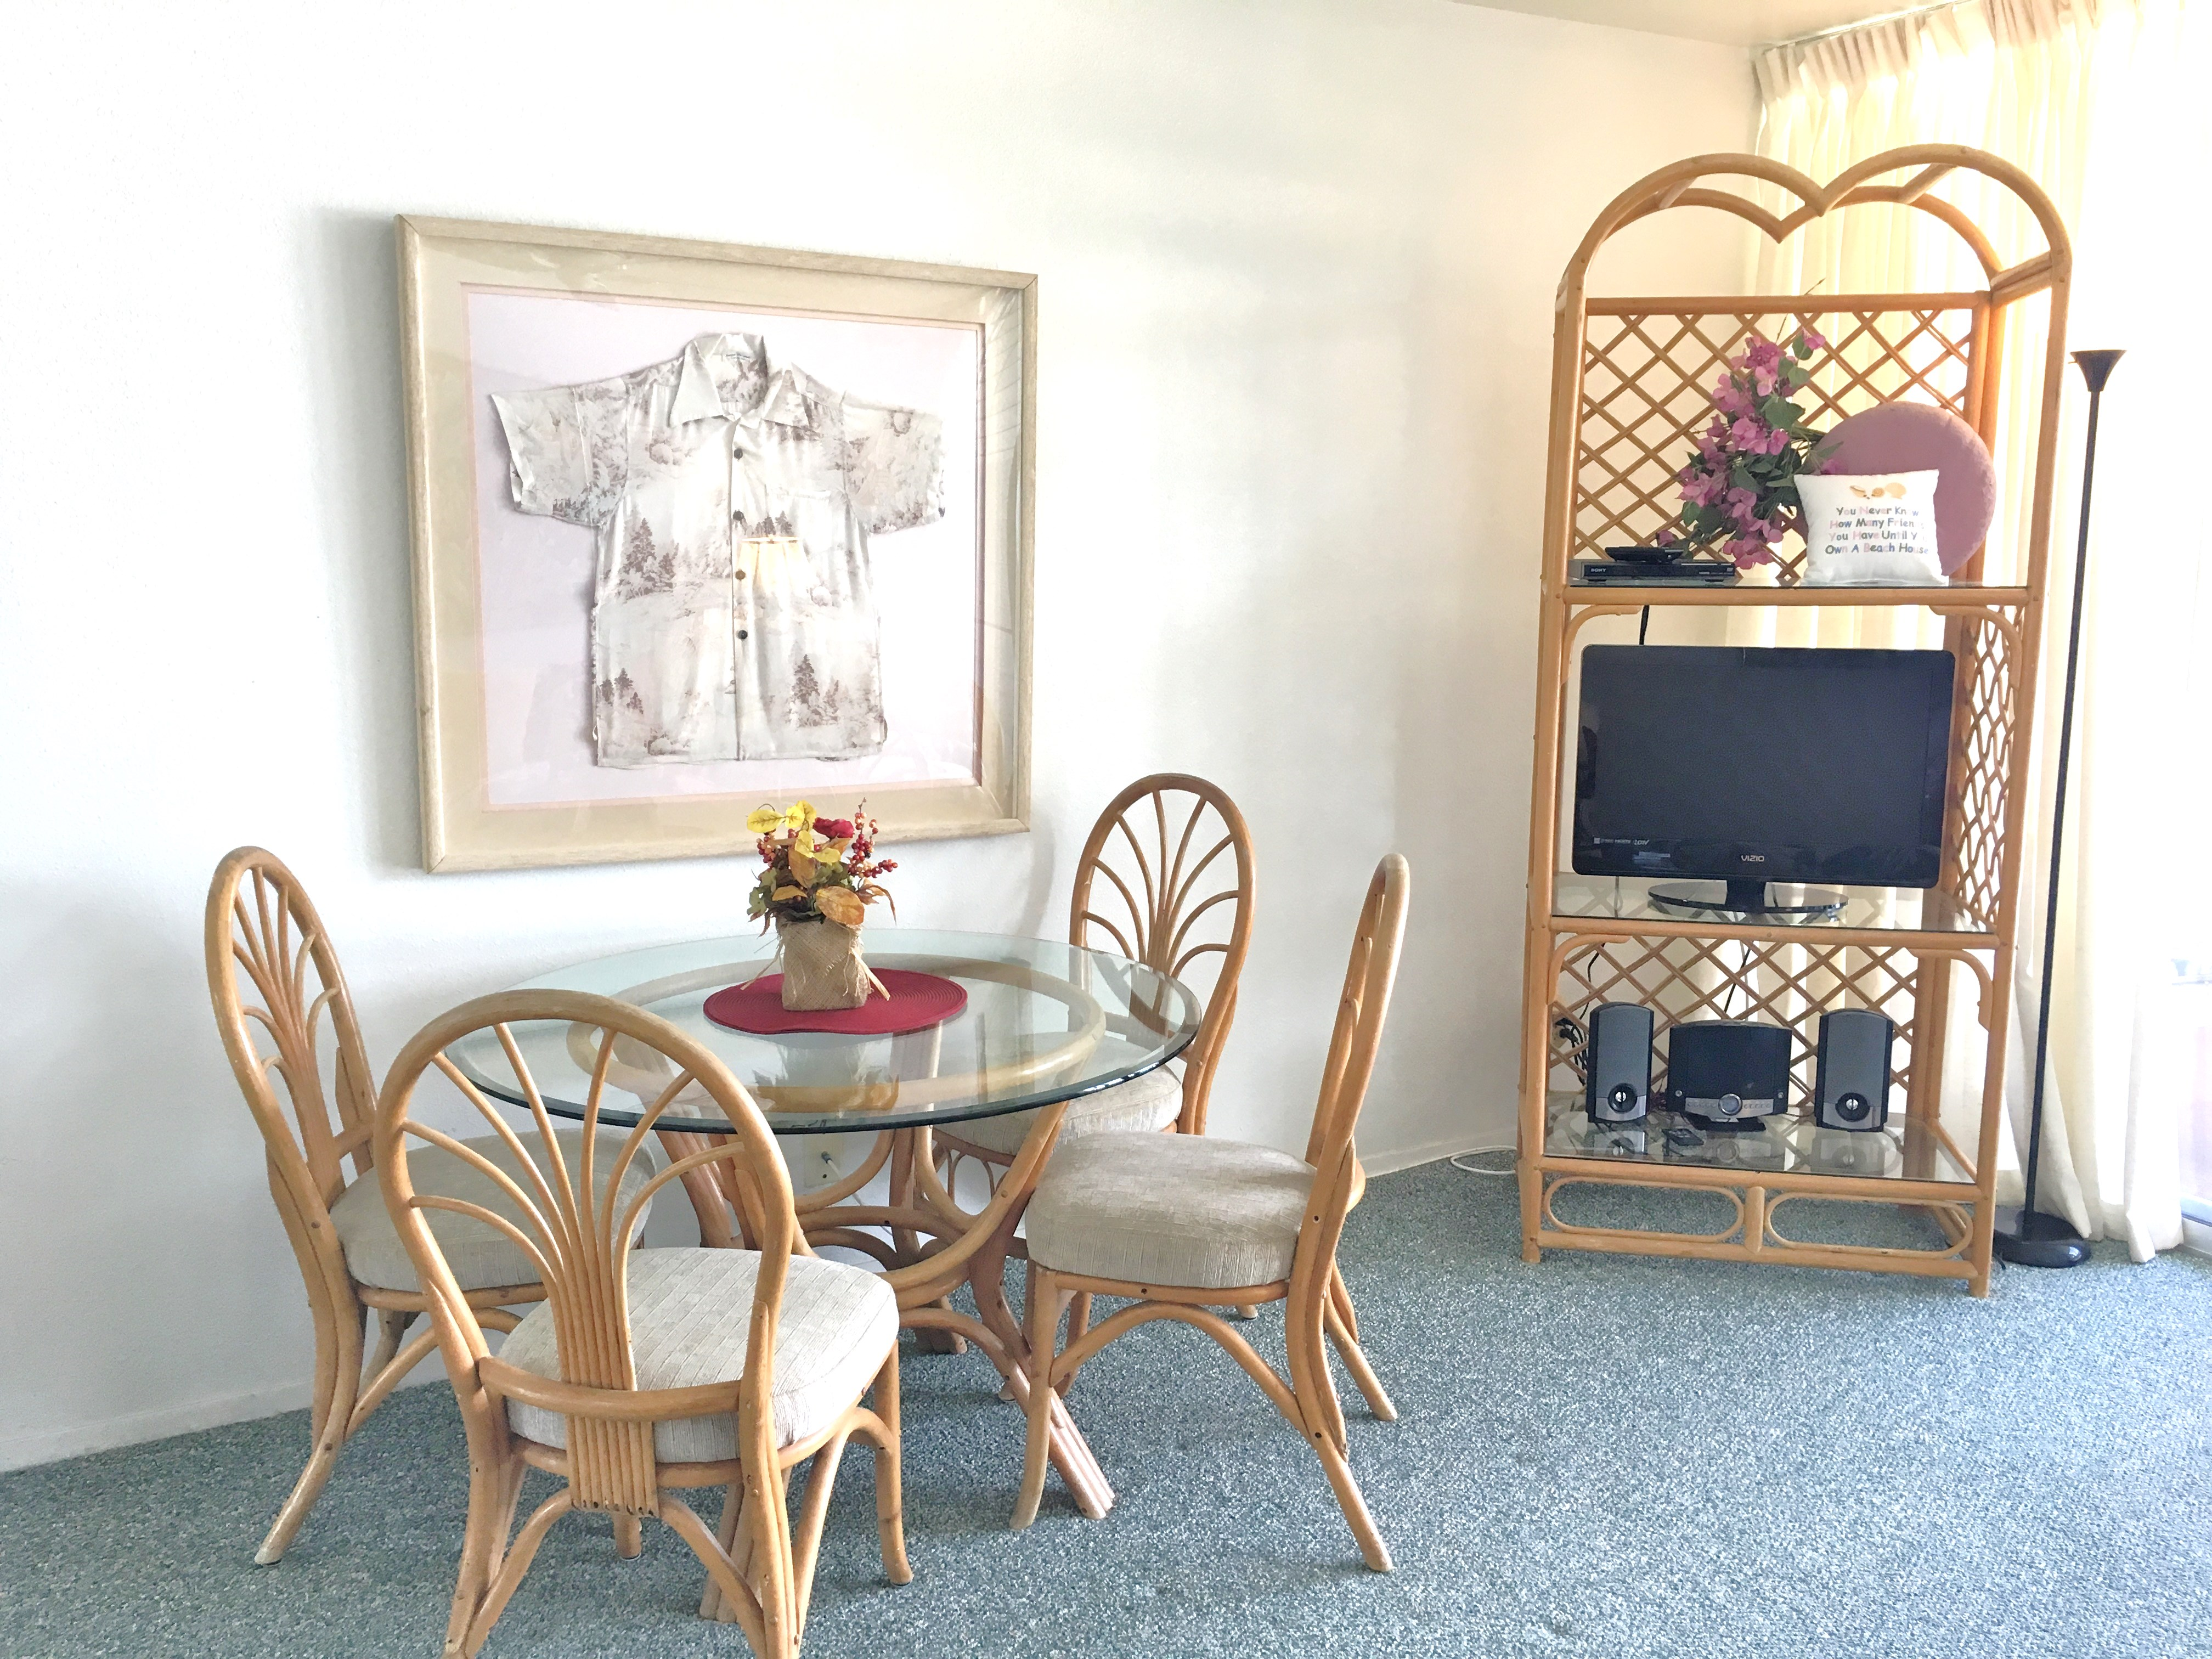 Wailua Bay View TV with dining table